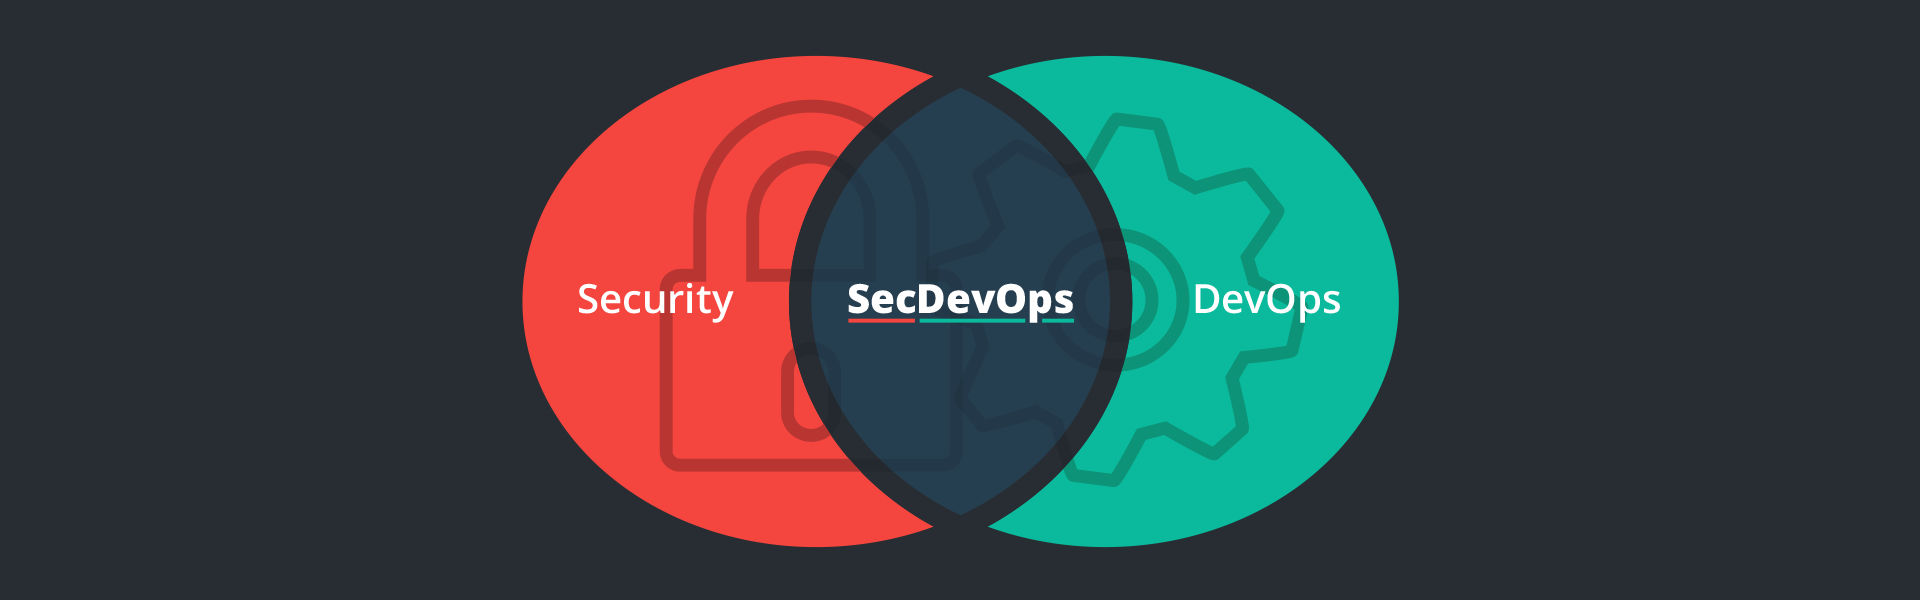 Three ways to manage security in agiledevops security compass three ways to manage security in agiledevops malvernweather Images